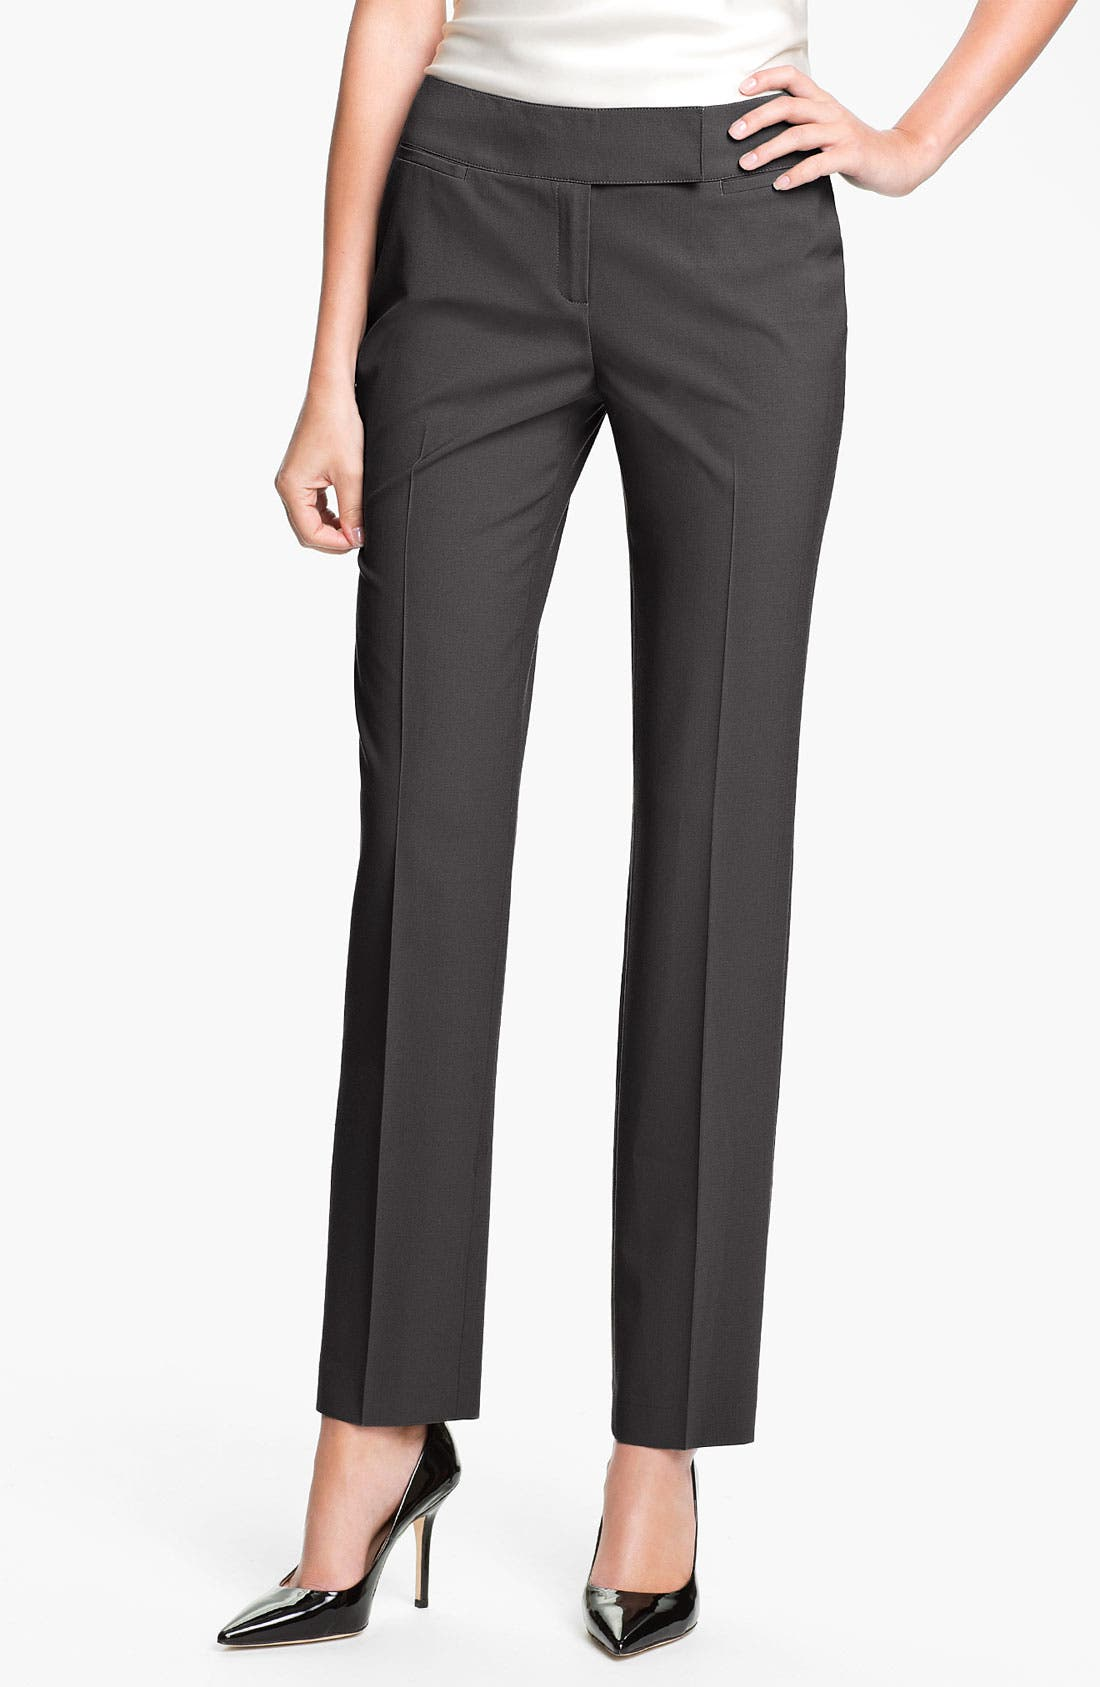 Alternate Image 1 Selected - Lafayette 148 New York 'Downing' Pants